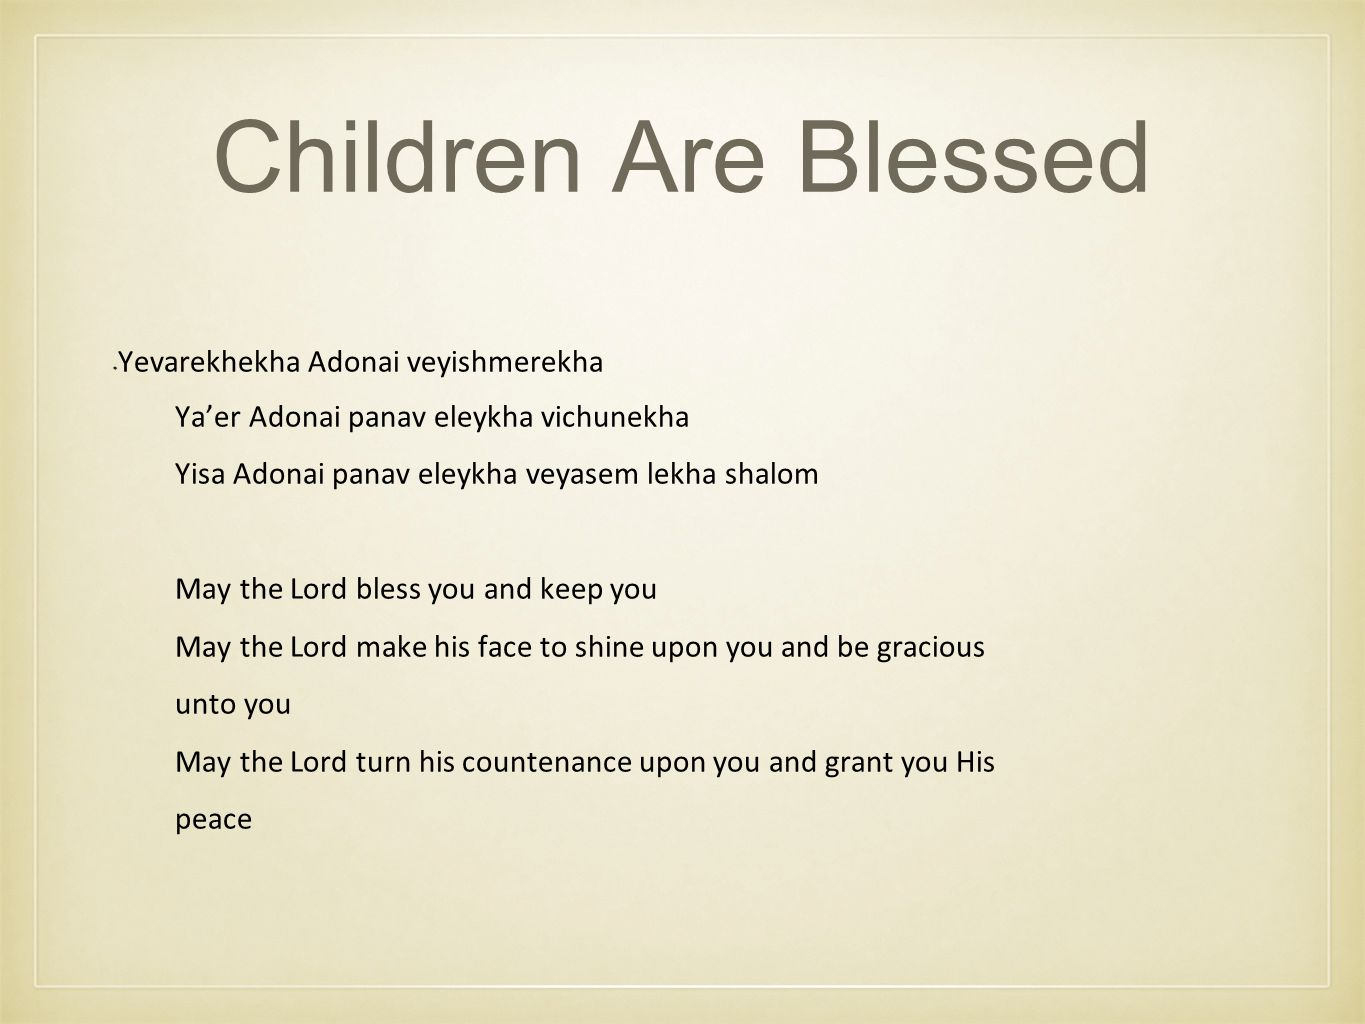 Children Are Blessed Yevarekhekha Adonai veyishmerekha Ya'er Adonai panav eleykha vichunekha Yisa Adonai panav eleykha veyasem lekha shalom May the Lord bless you and keep you May the Lord make his face to shine upon you and be gracious unto you May the Lord turn his countenance upon you and grant you His peace